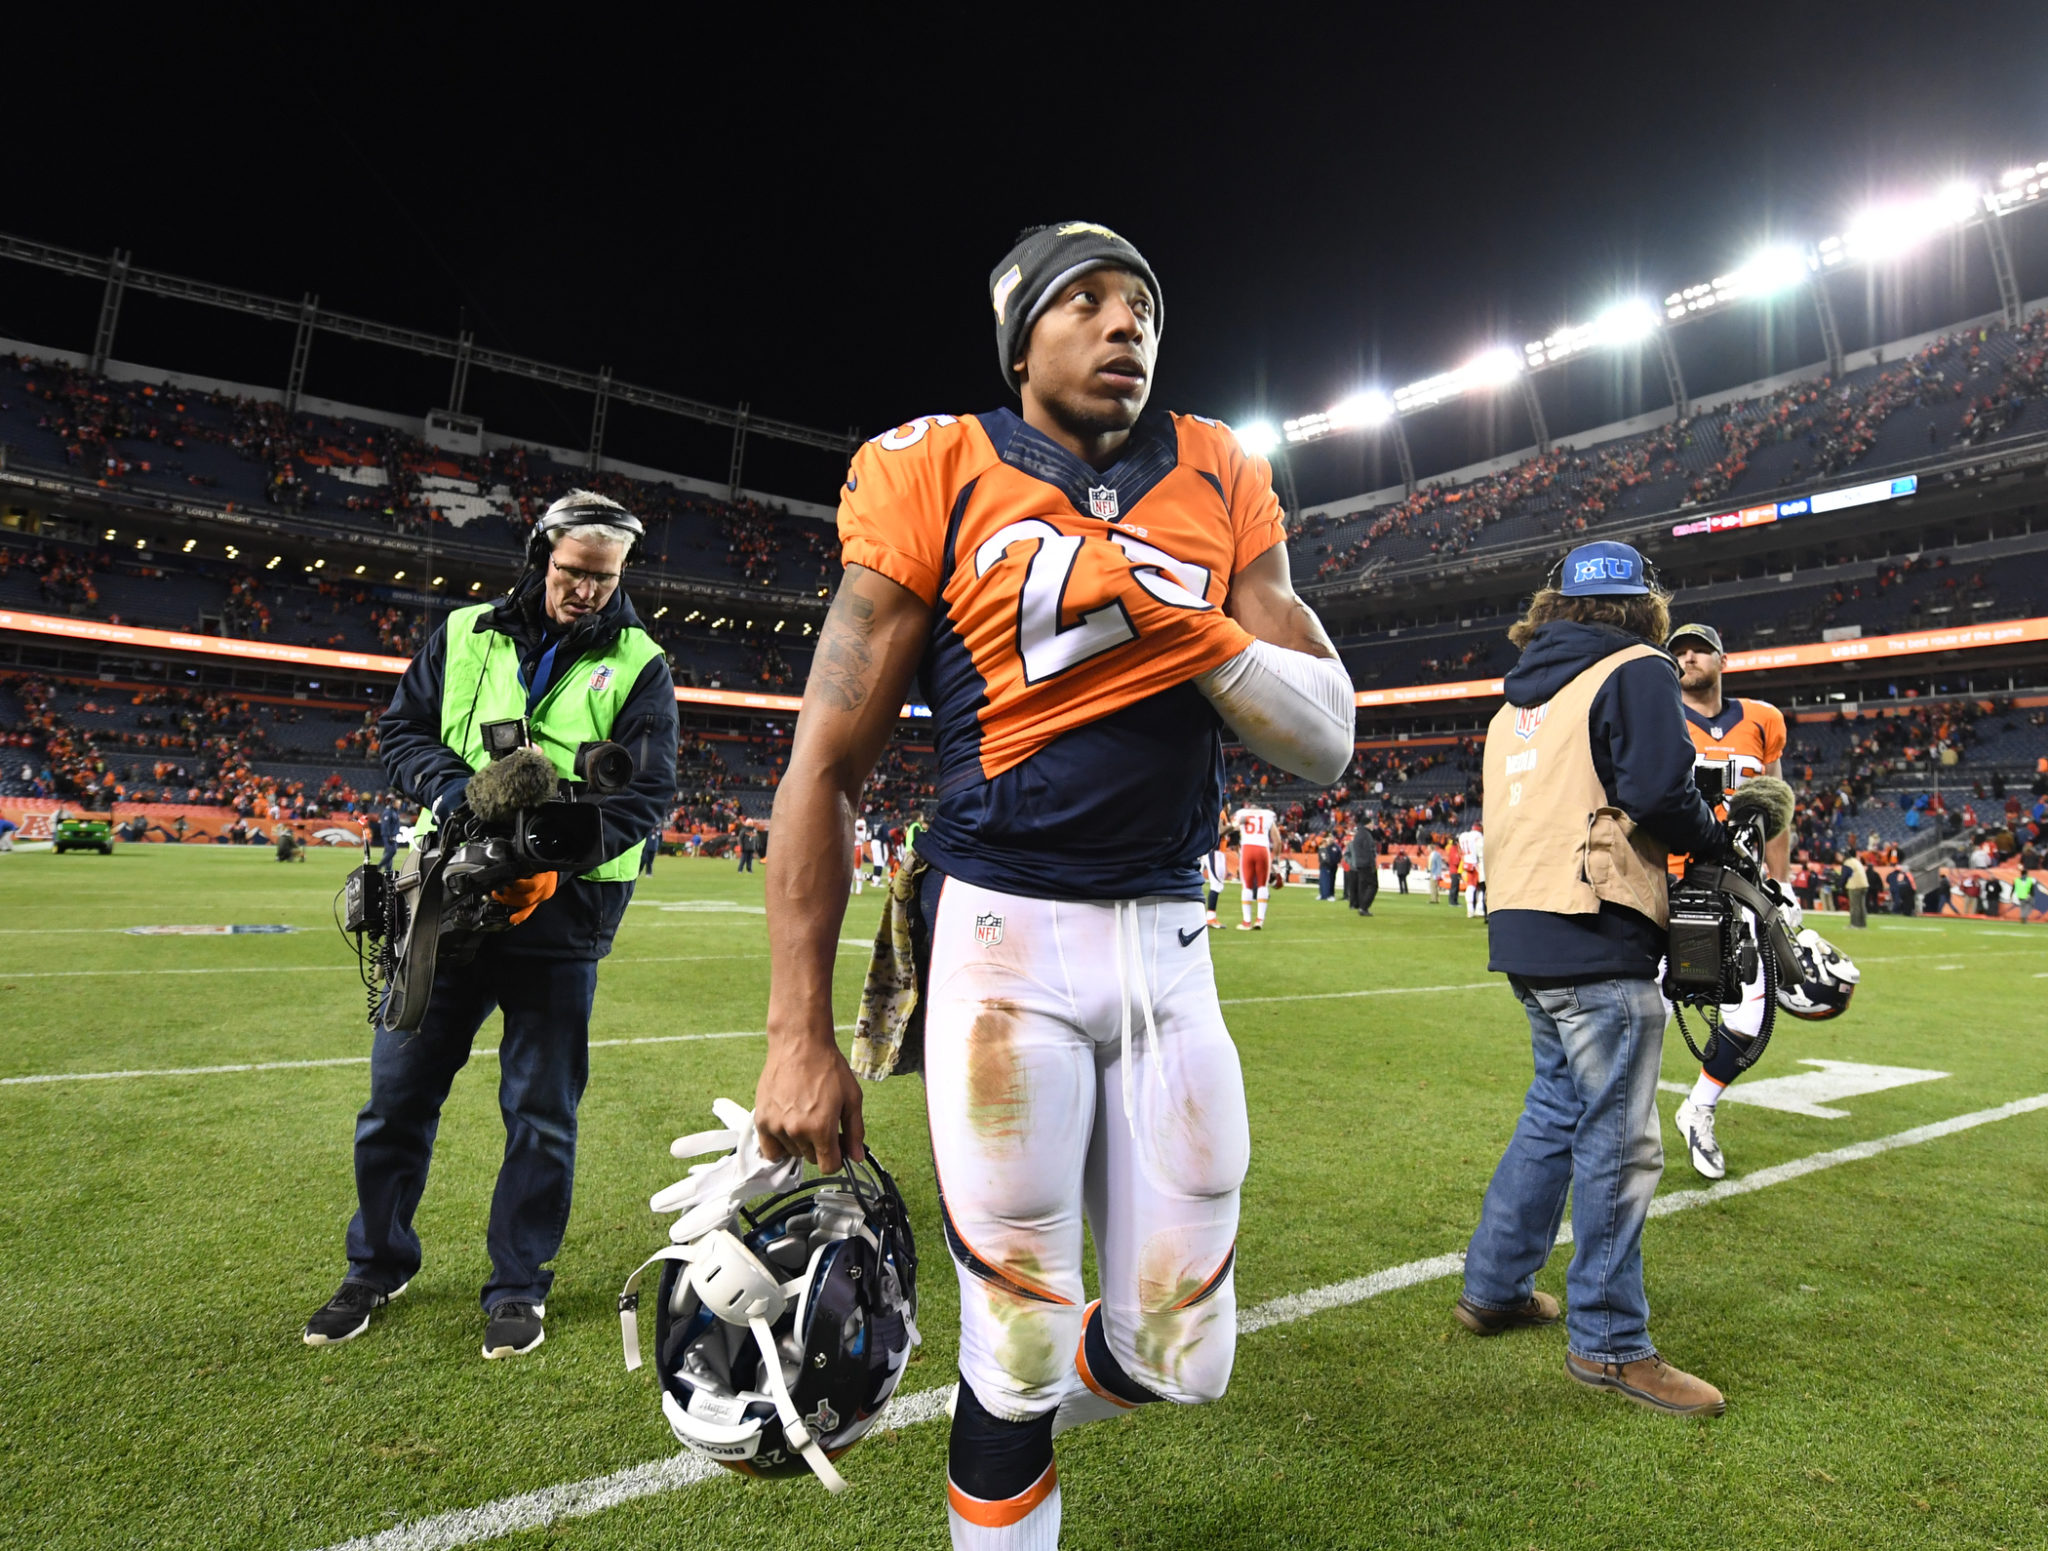 Denver Broncos cornerback Chris Harris Jr. (25) walks off the field dejected after Denver loses to  the Kansas City Chiefs 30-27 in overtime in the NFL game at  Sports Authority Field in Denver, Colo. November 27, 2016.